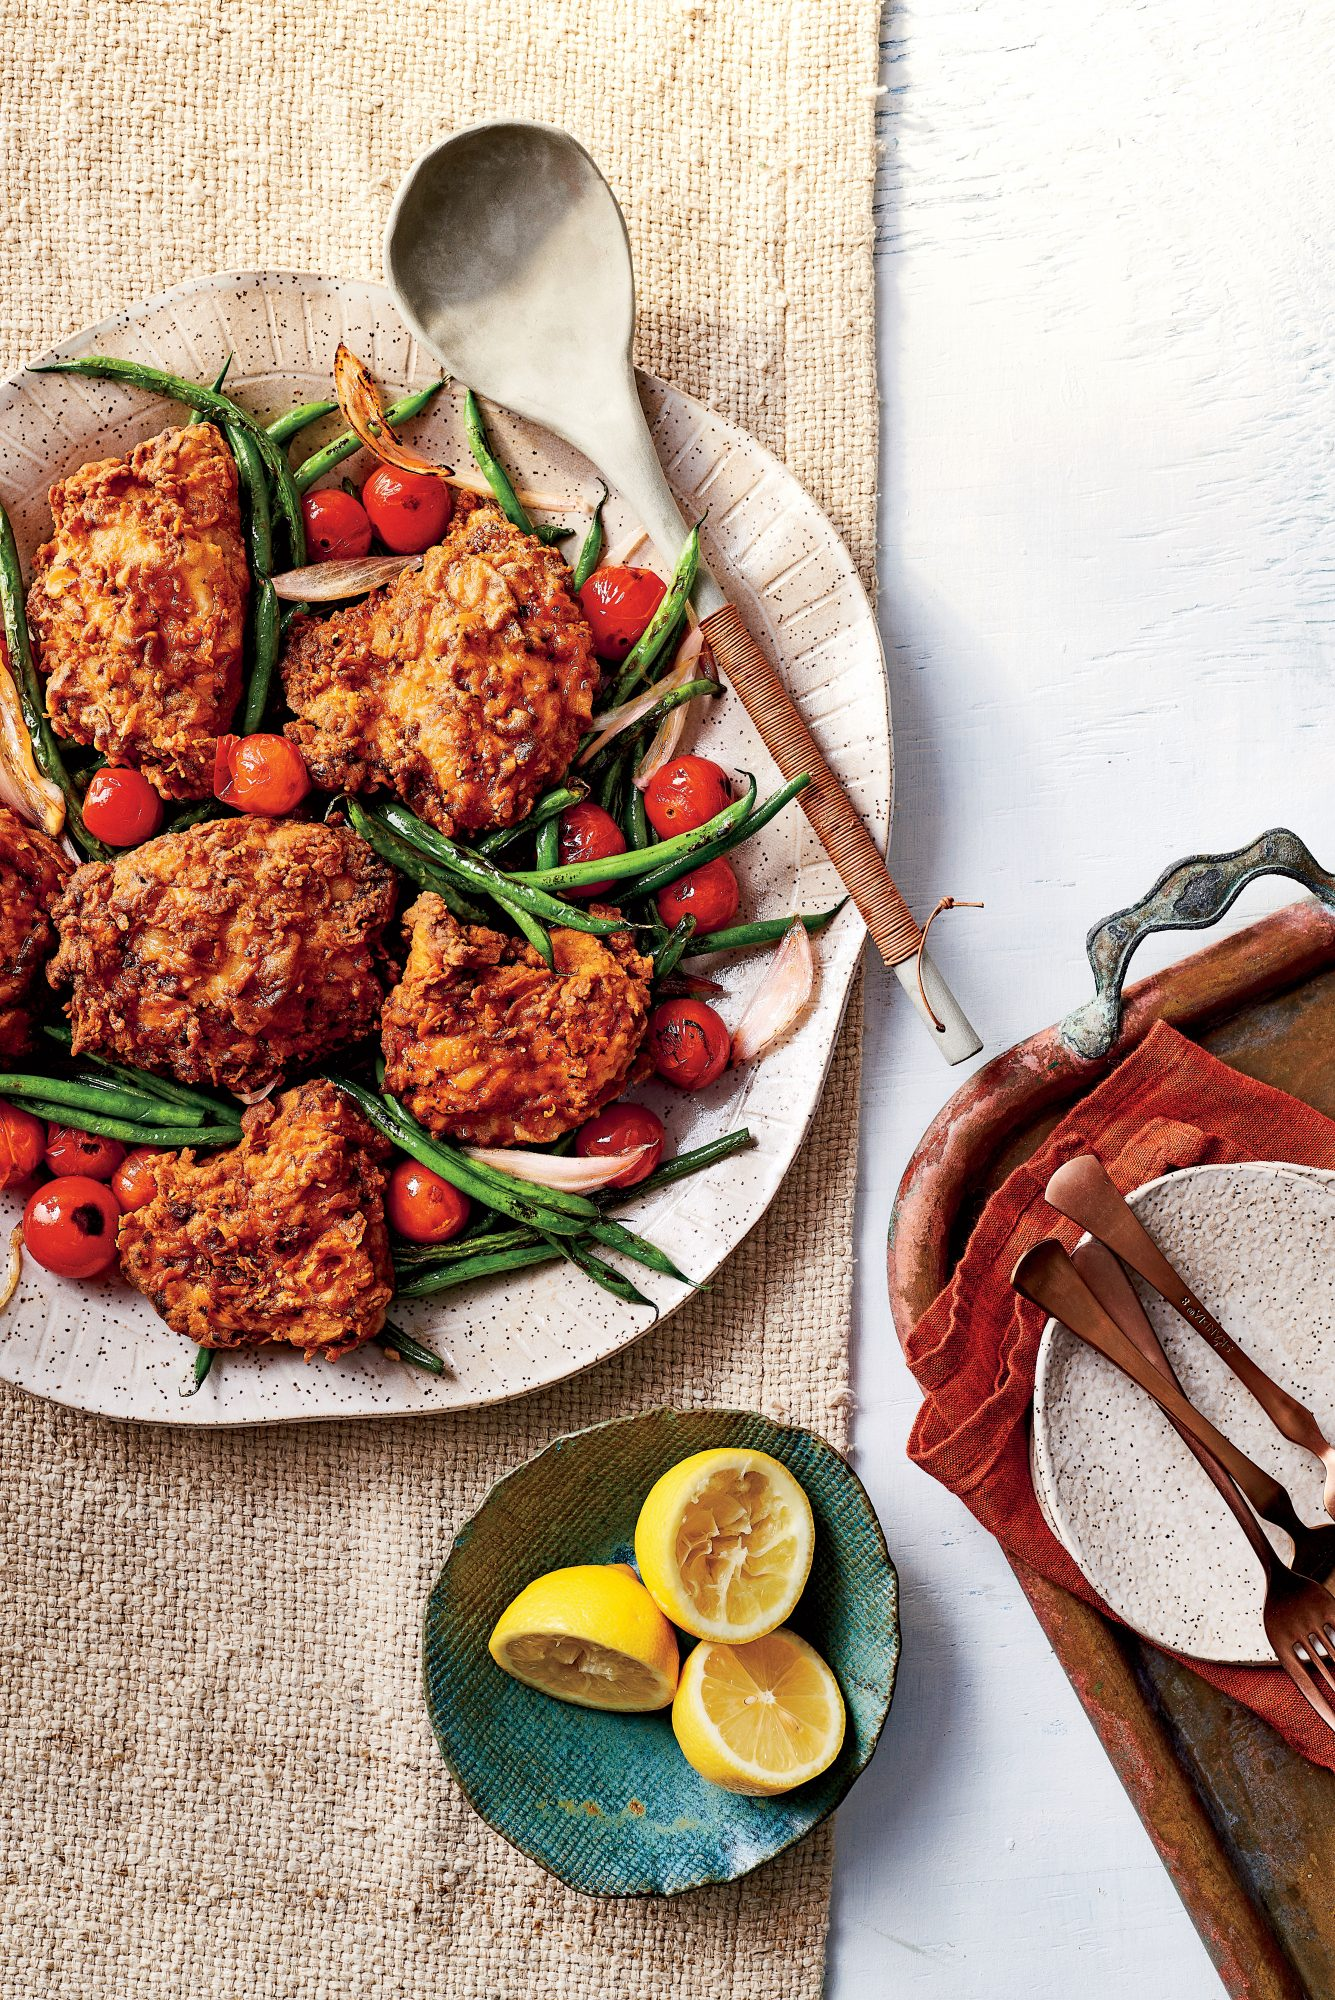 Lighter Pan-Fried Chicken with Green Beans and Tomatoes